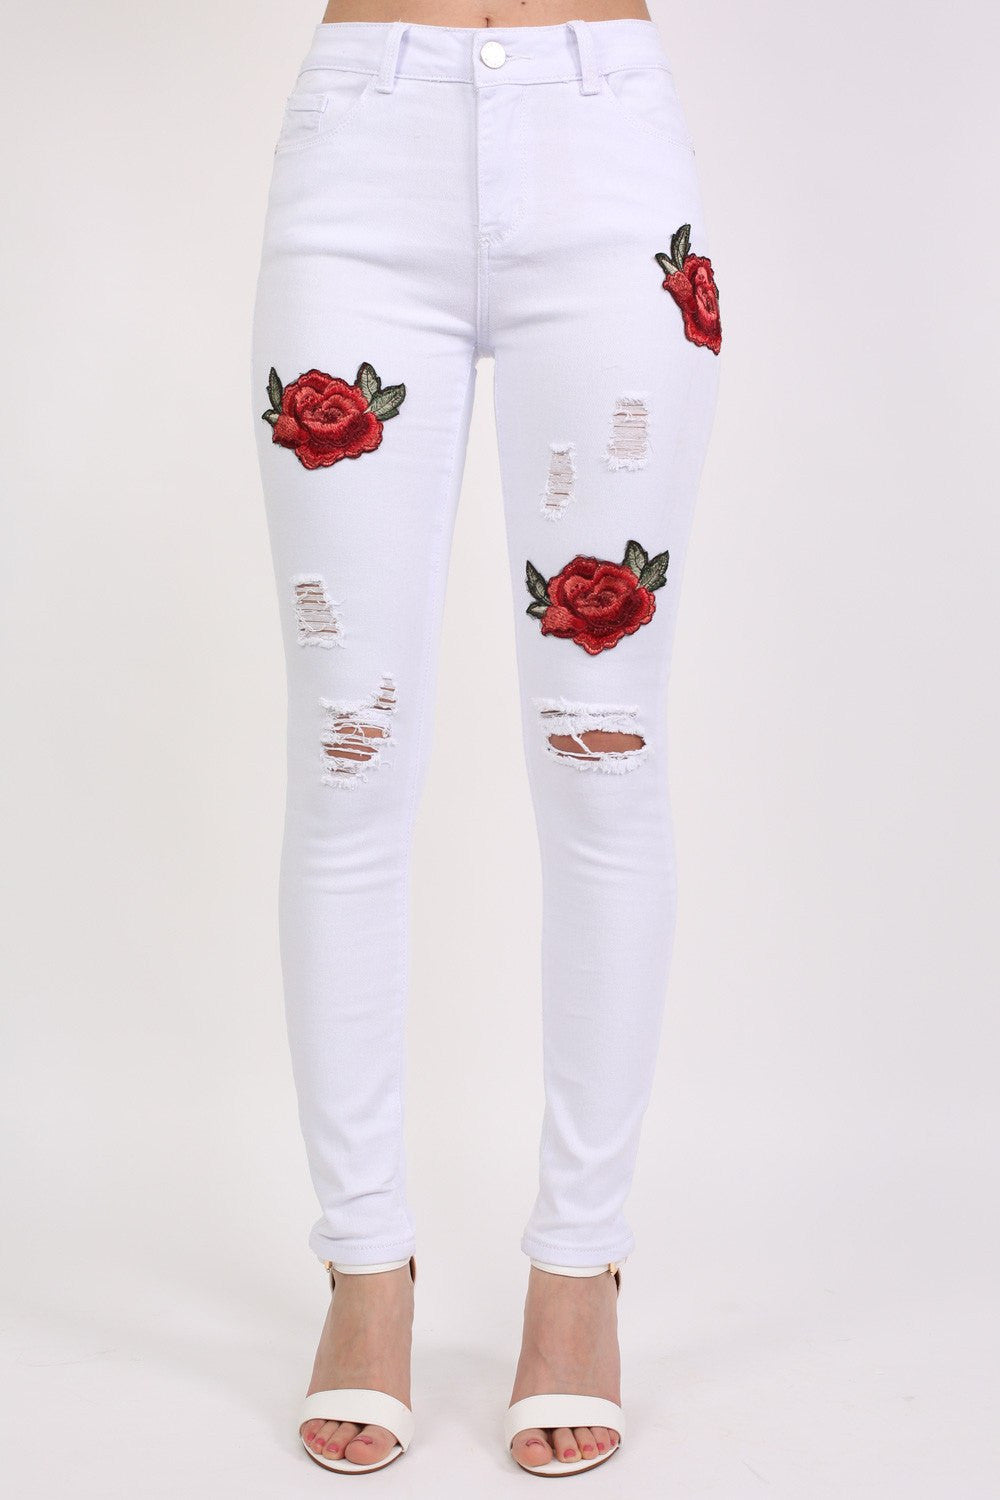 Floral Embroidered Ripped Skinny Jeans in White 1